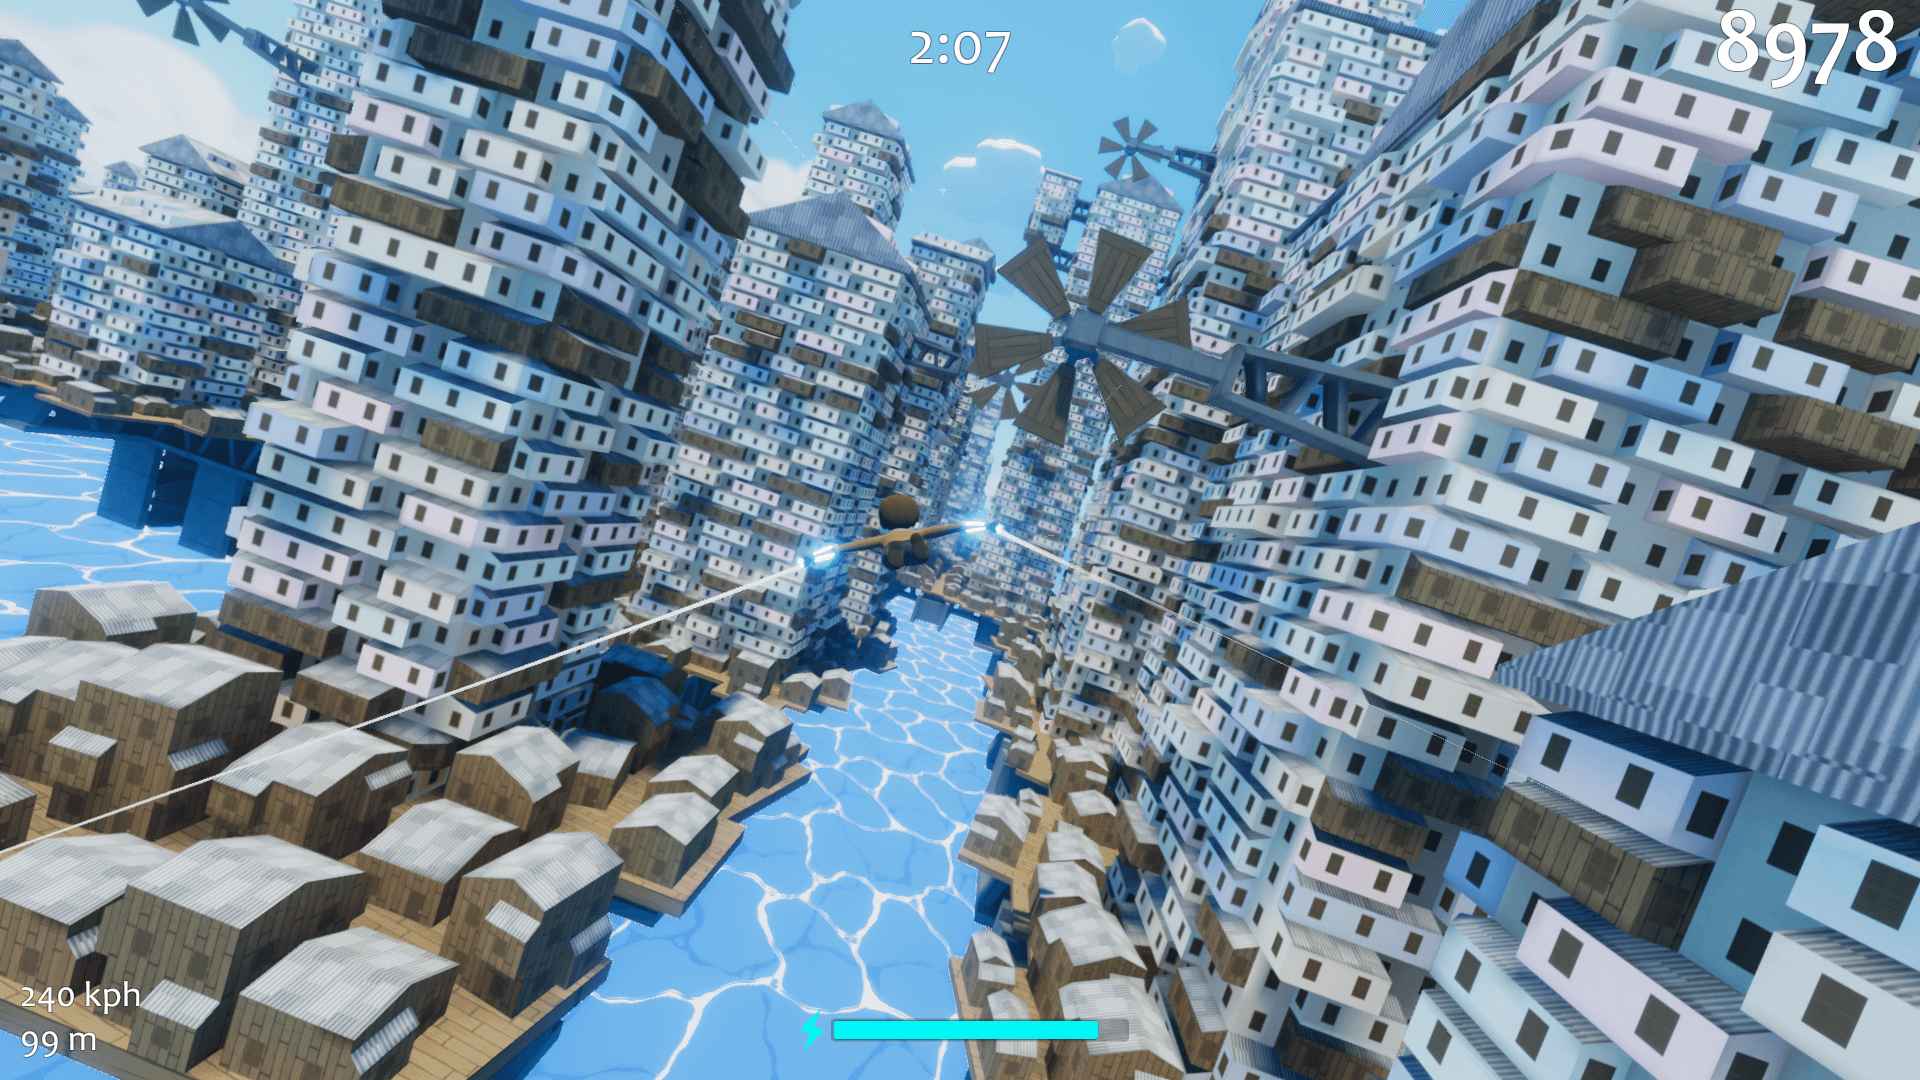 Flying through a city of jumbled towers